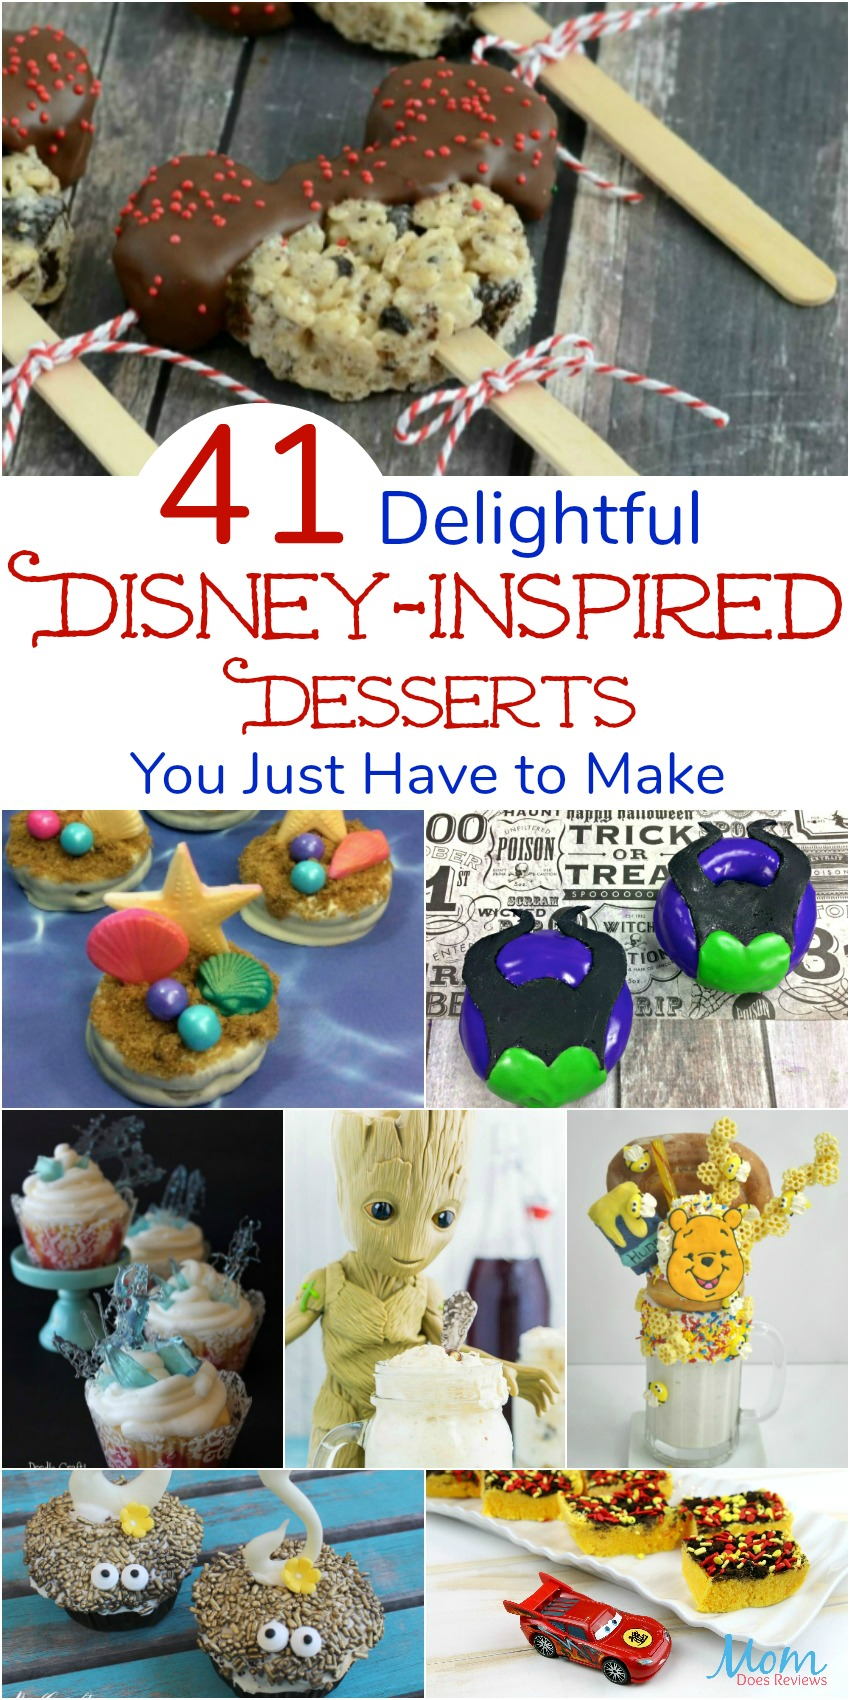 41 Delightful Disney-Inspired Desserts You Just Have to Make